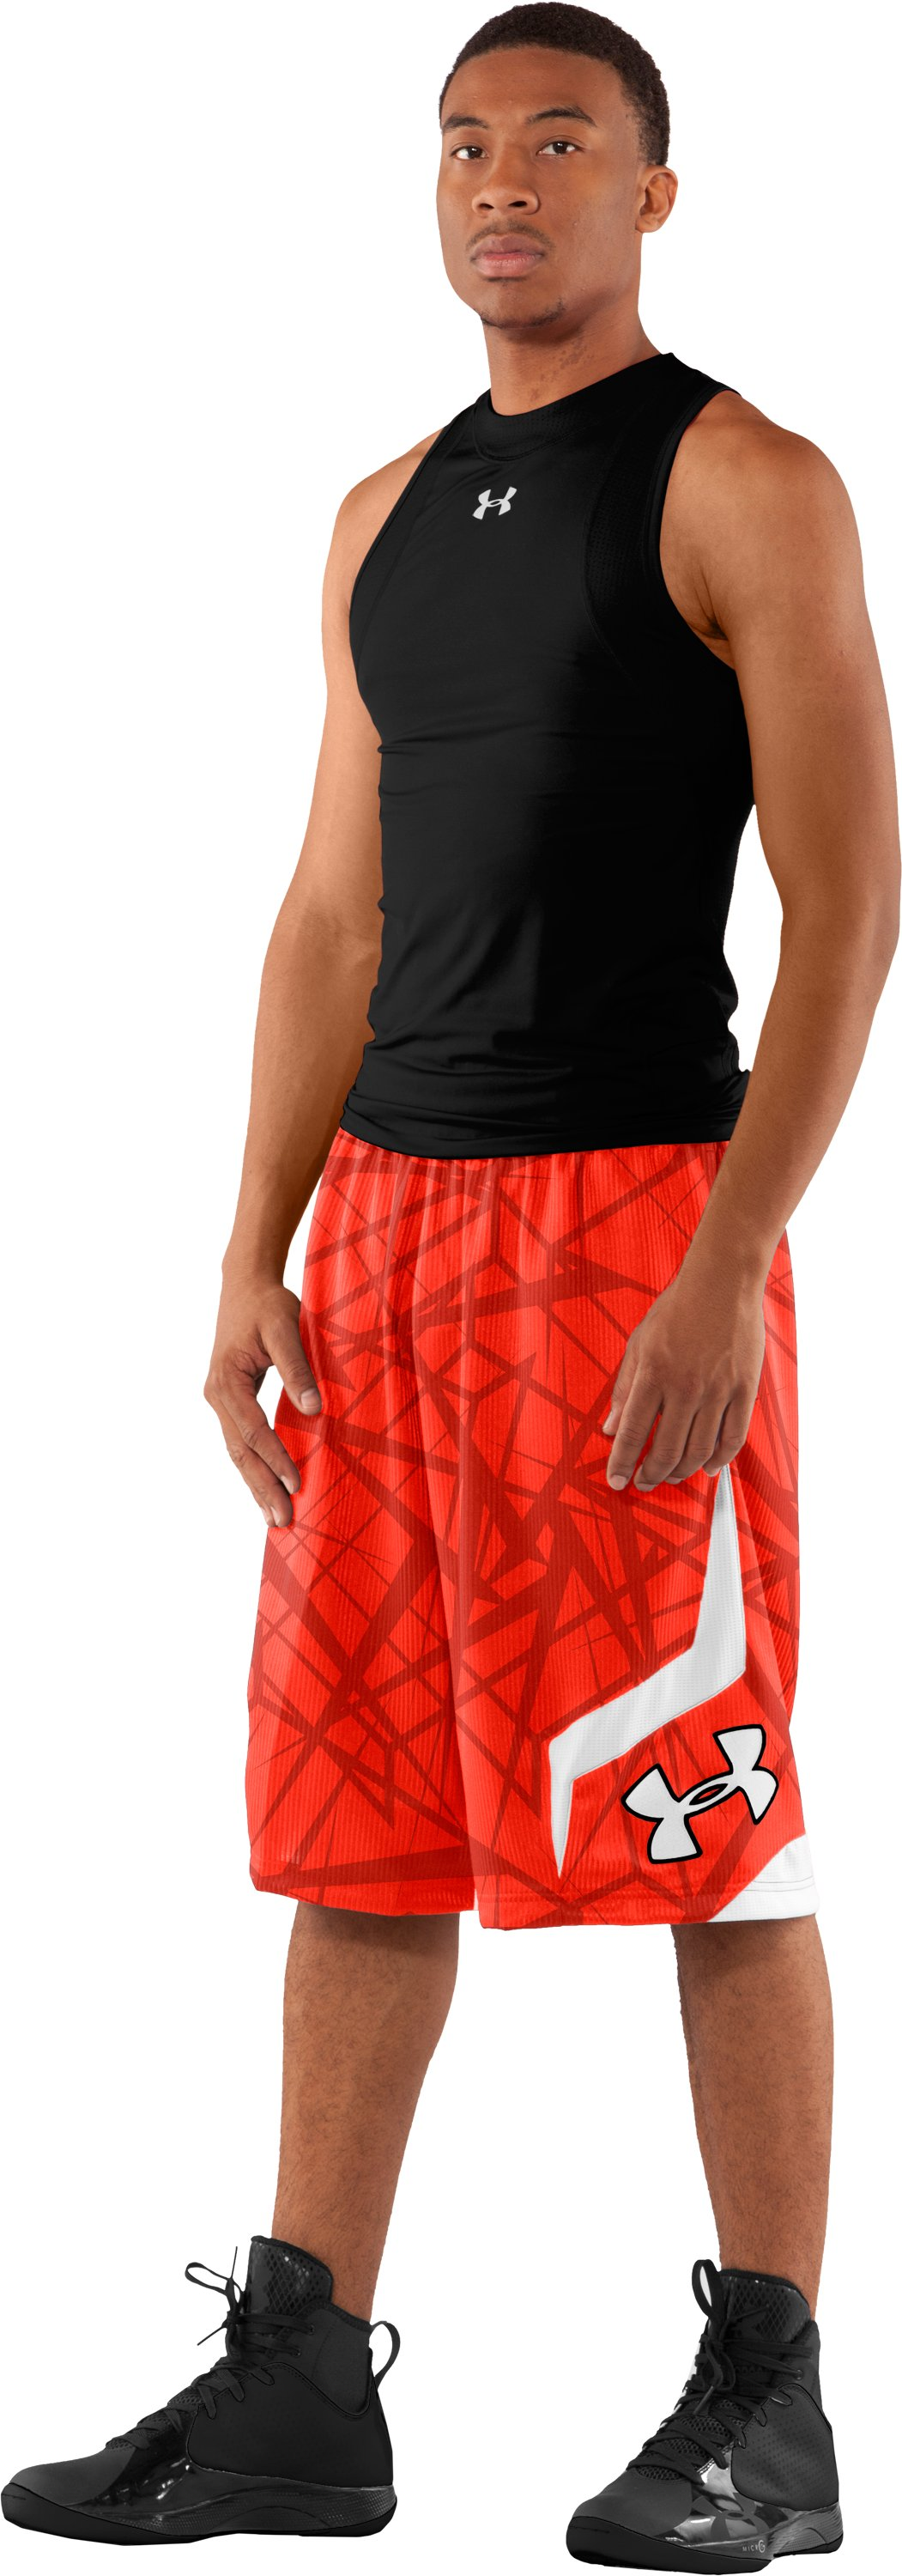 "Men's Printed UA Valkyrie 12"" Basketball Shorts, Fuego"